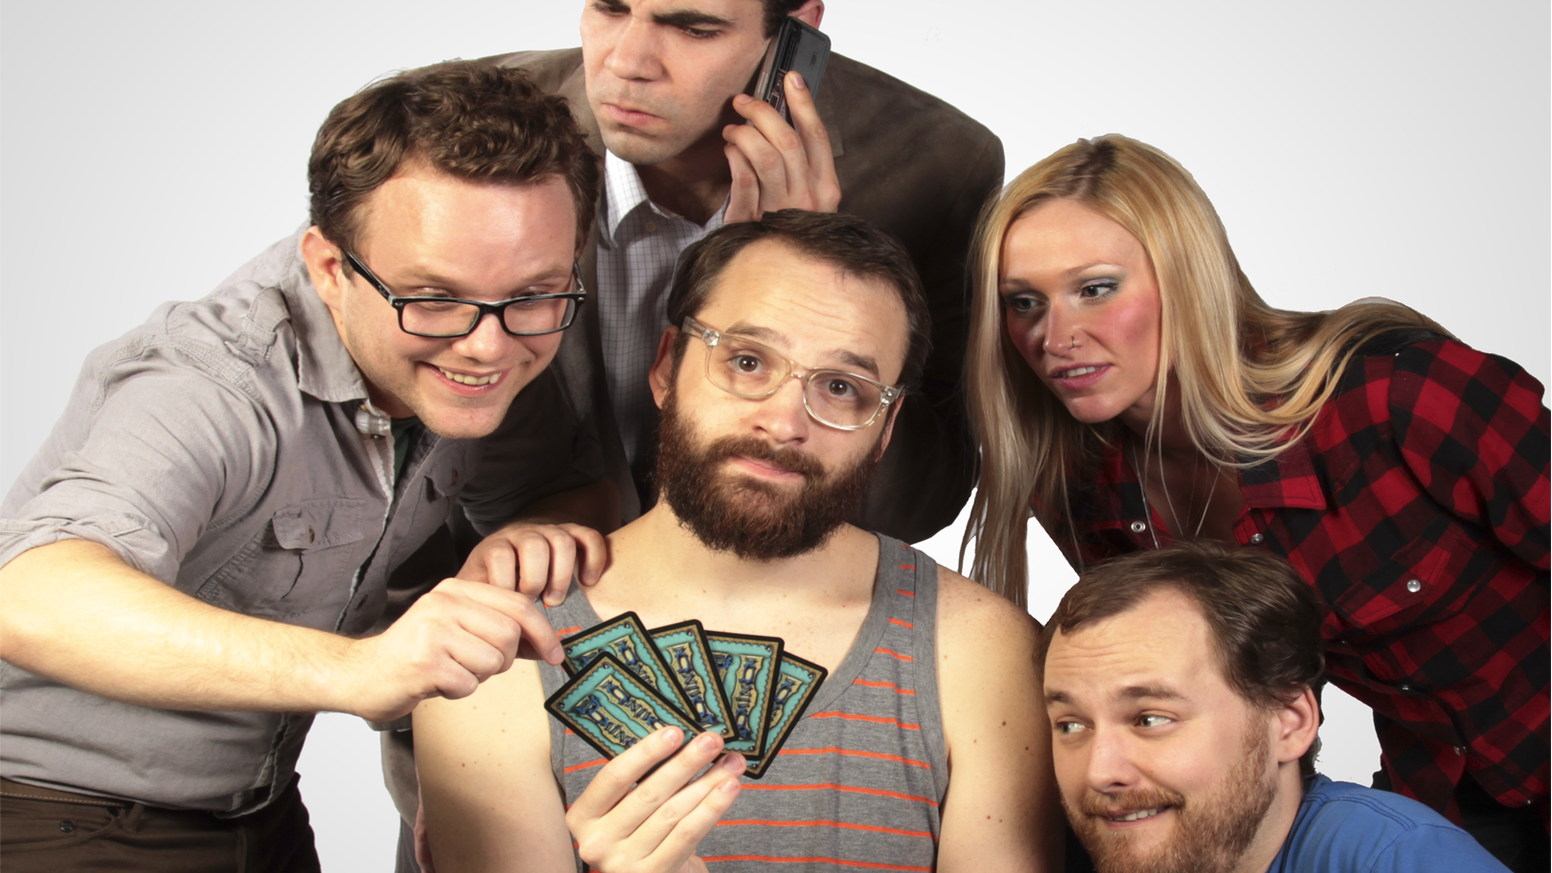 Board with Life is a comedy web series following a group of board game geeks during their weekly game nights.